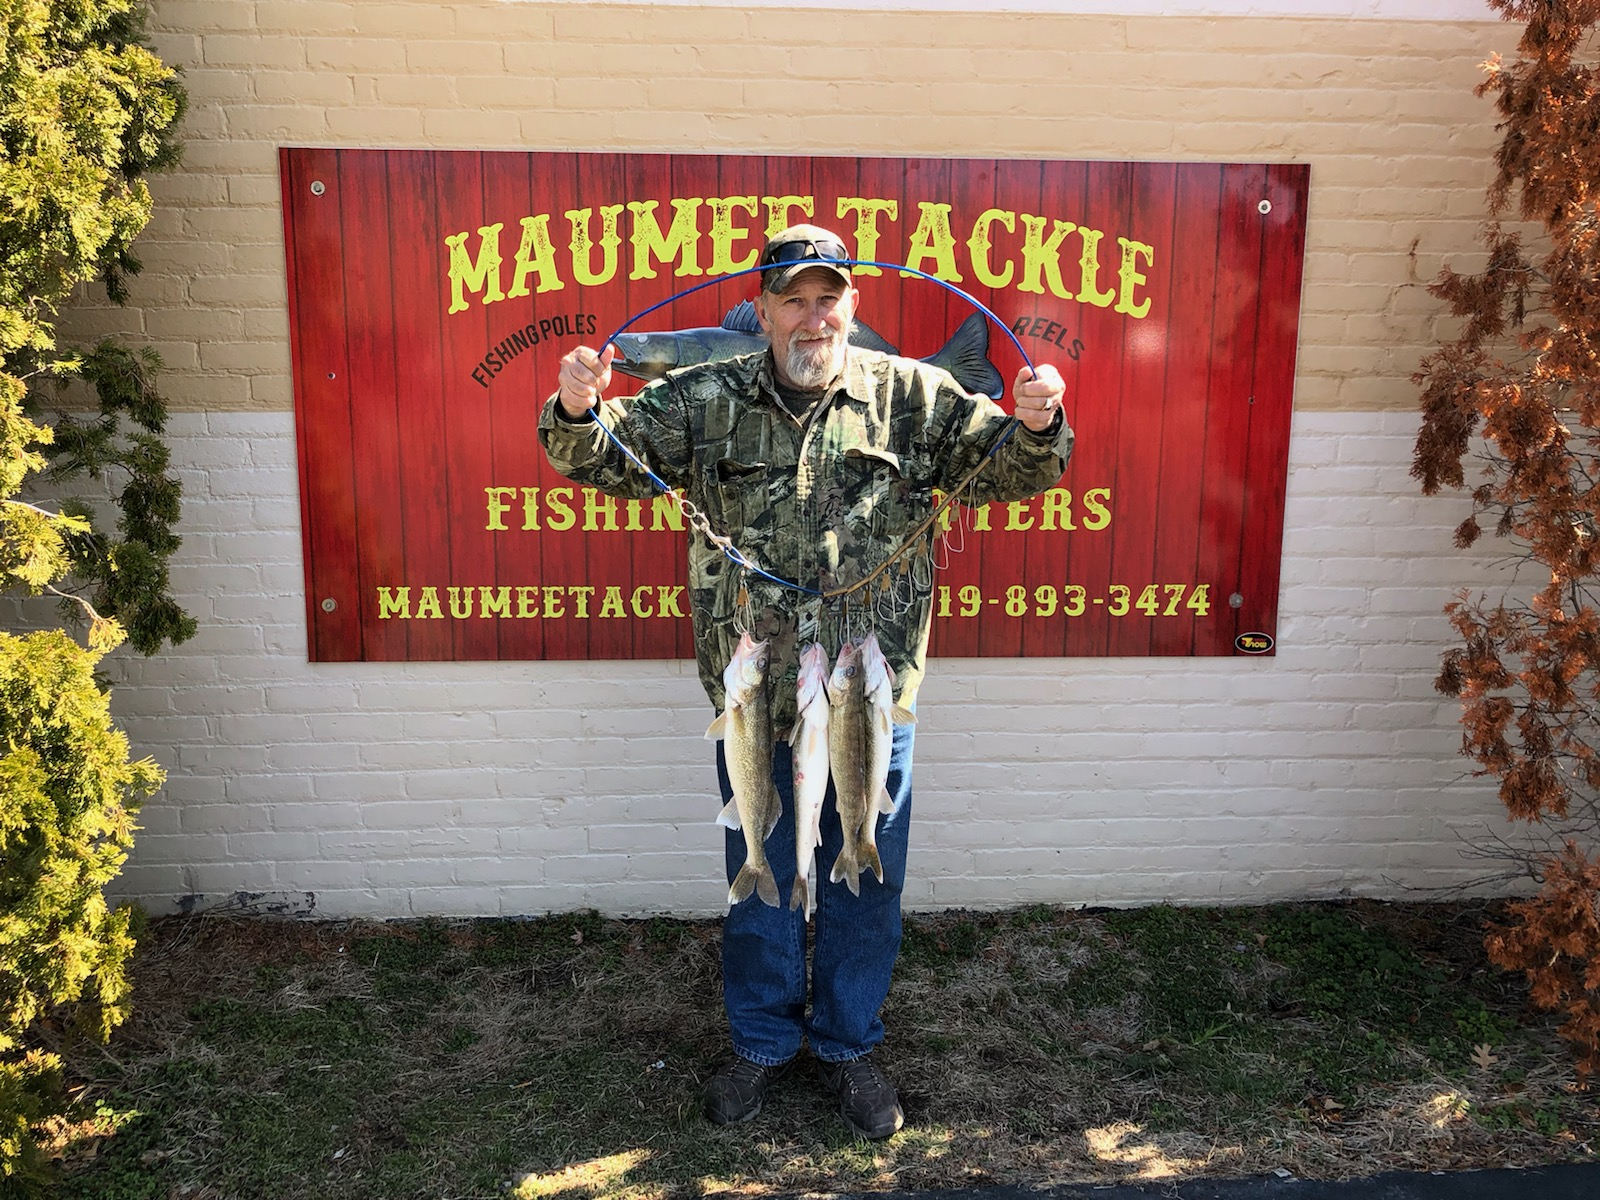 Maumee river Report- 4 April 2019